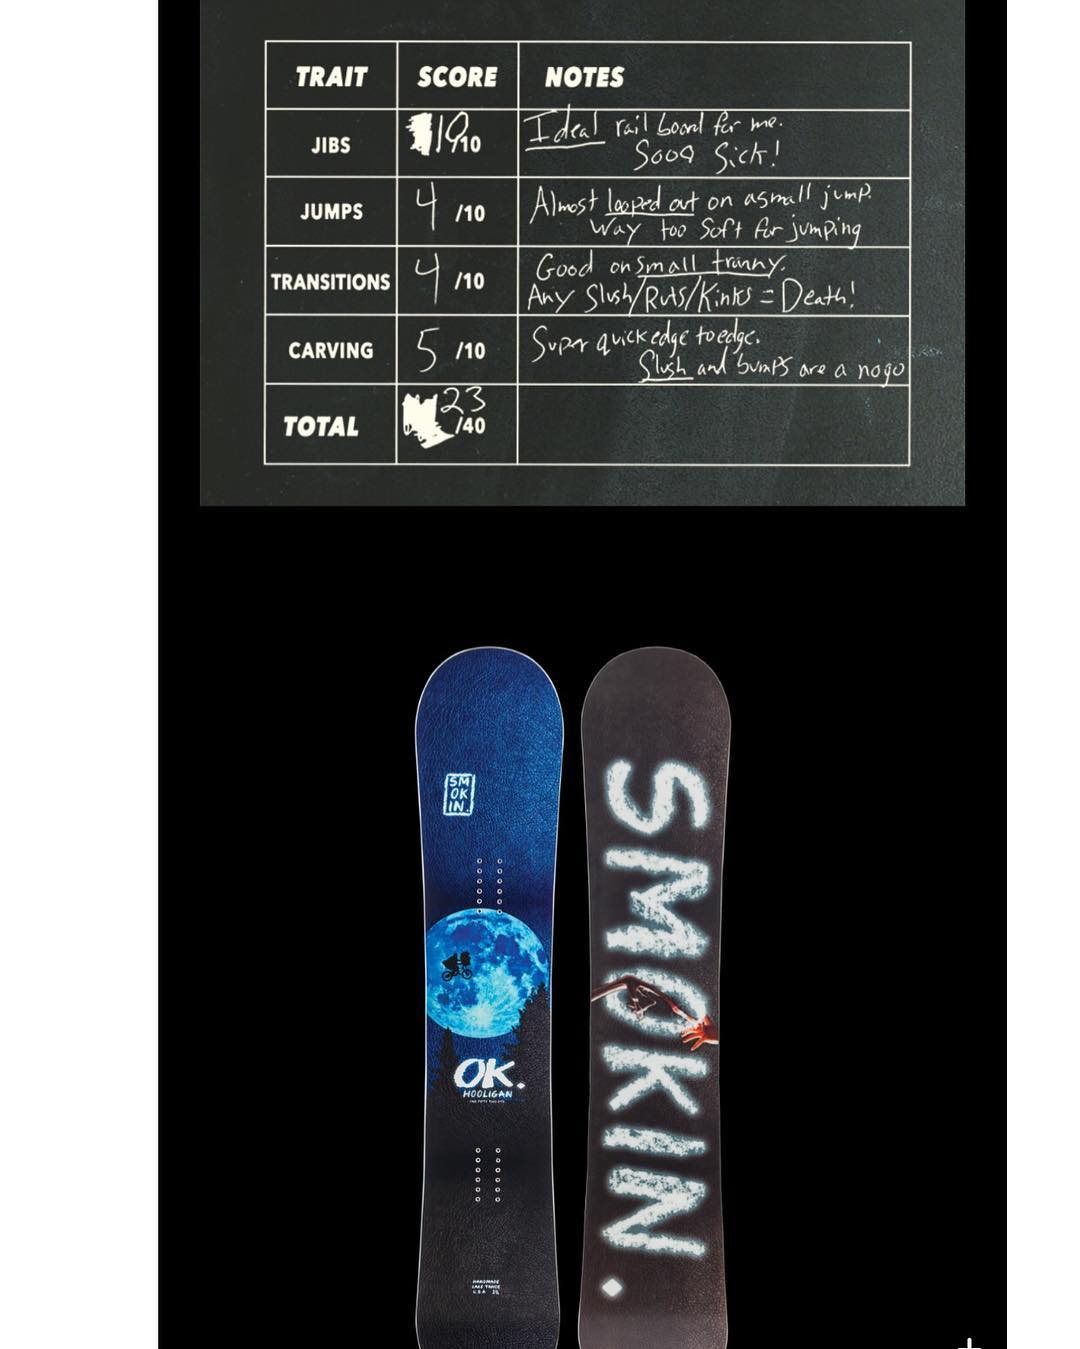 Check out our #Hooligan today @snowboardermag ,the #blackboardtest @sagekotsenburg (Sochi big air Gold medalist)  tested and says the #Hooligan was his favorite of all 10 boards he tested for #jibbing - big thanks Sage! #forridersbyriders |...